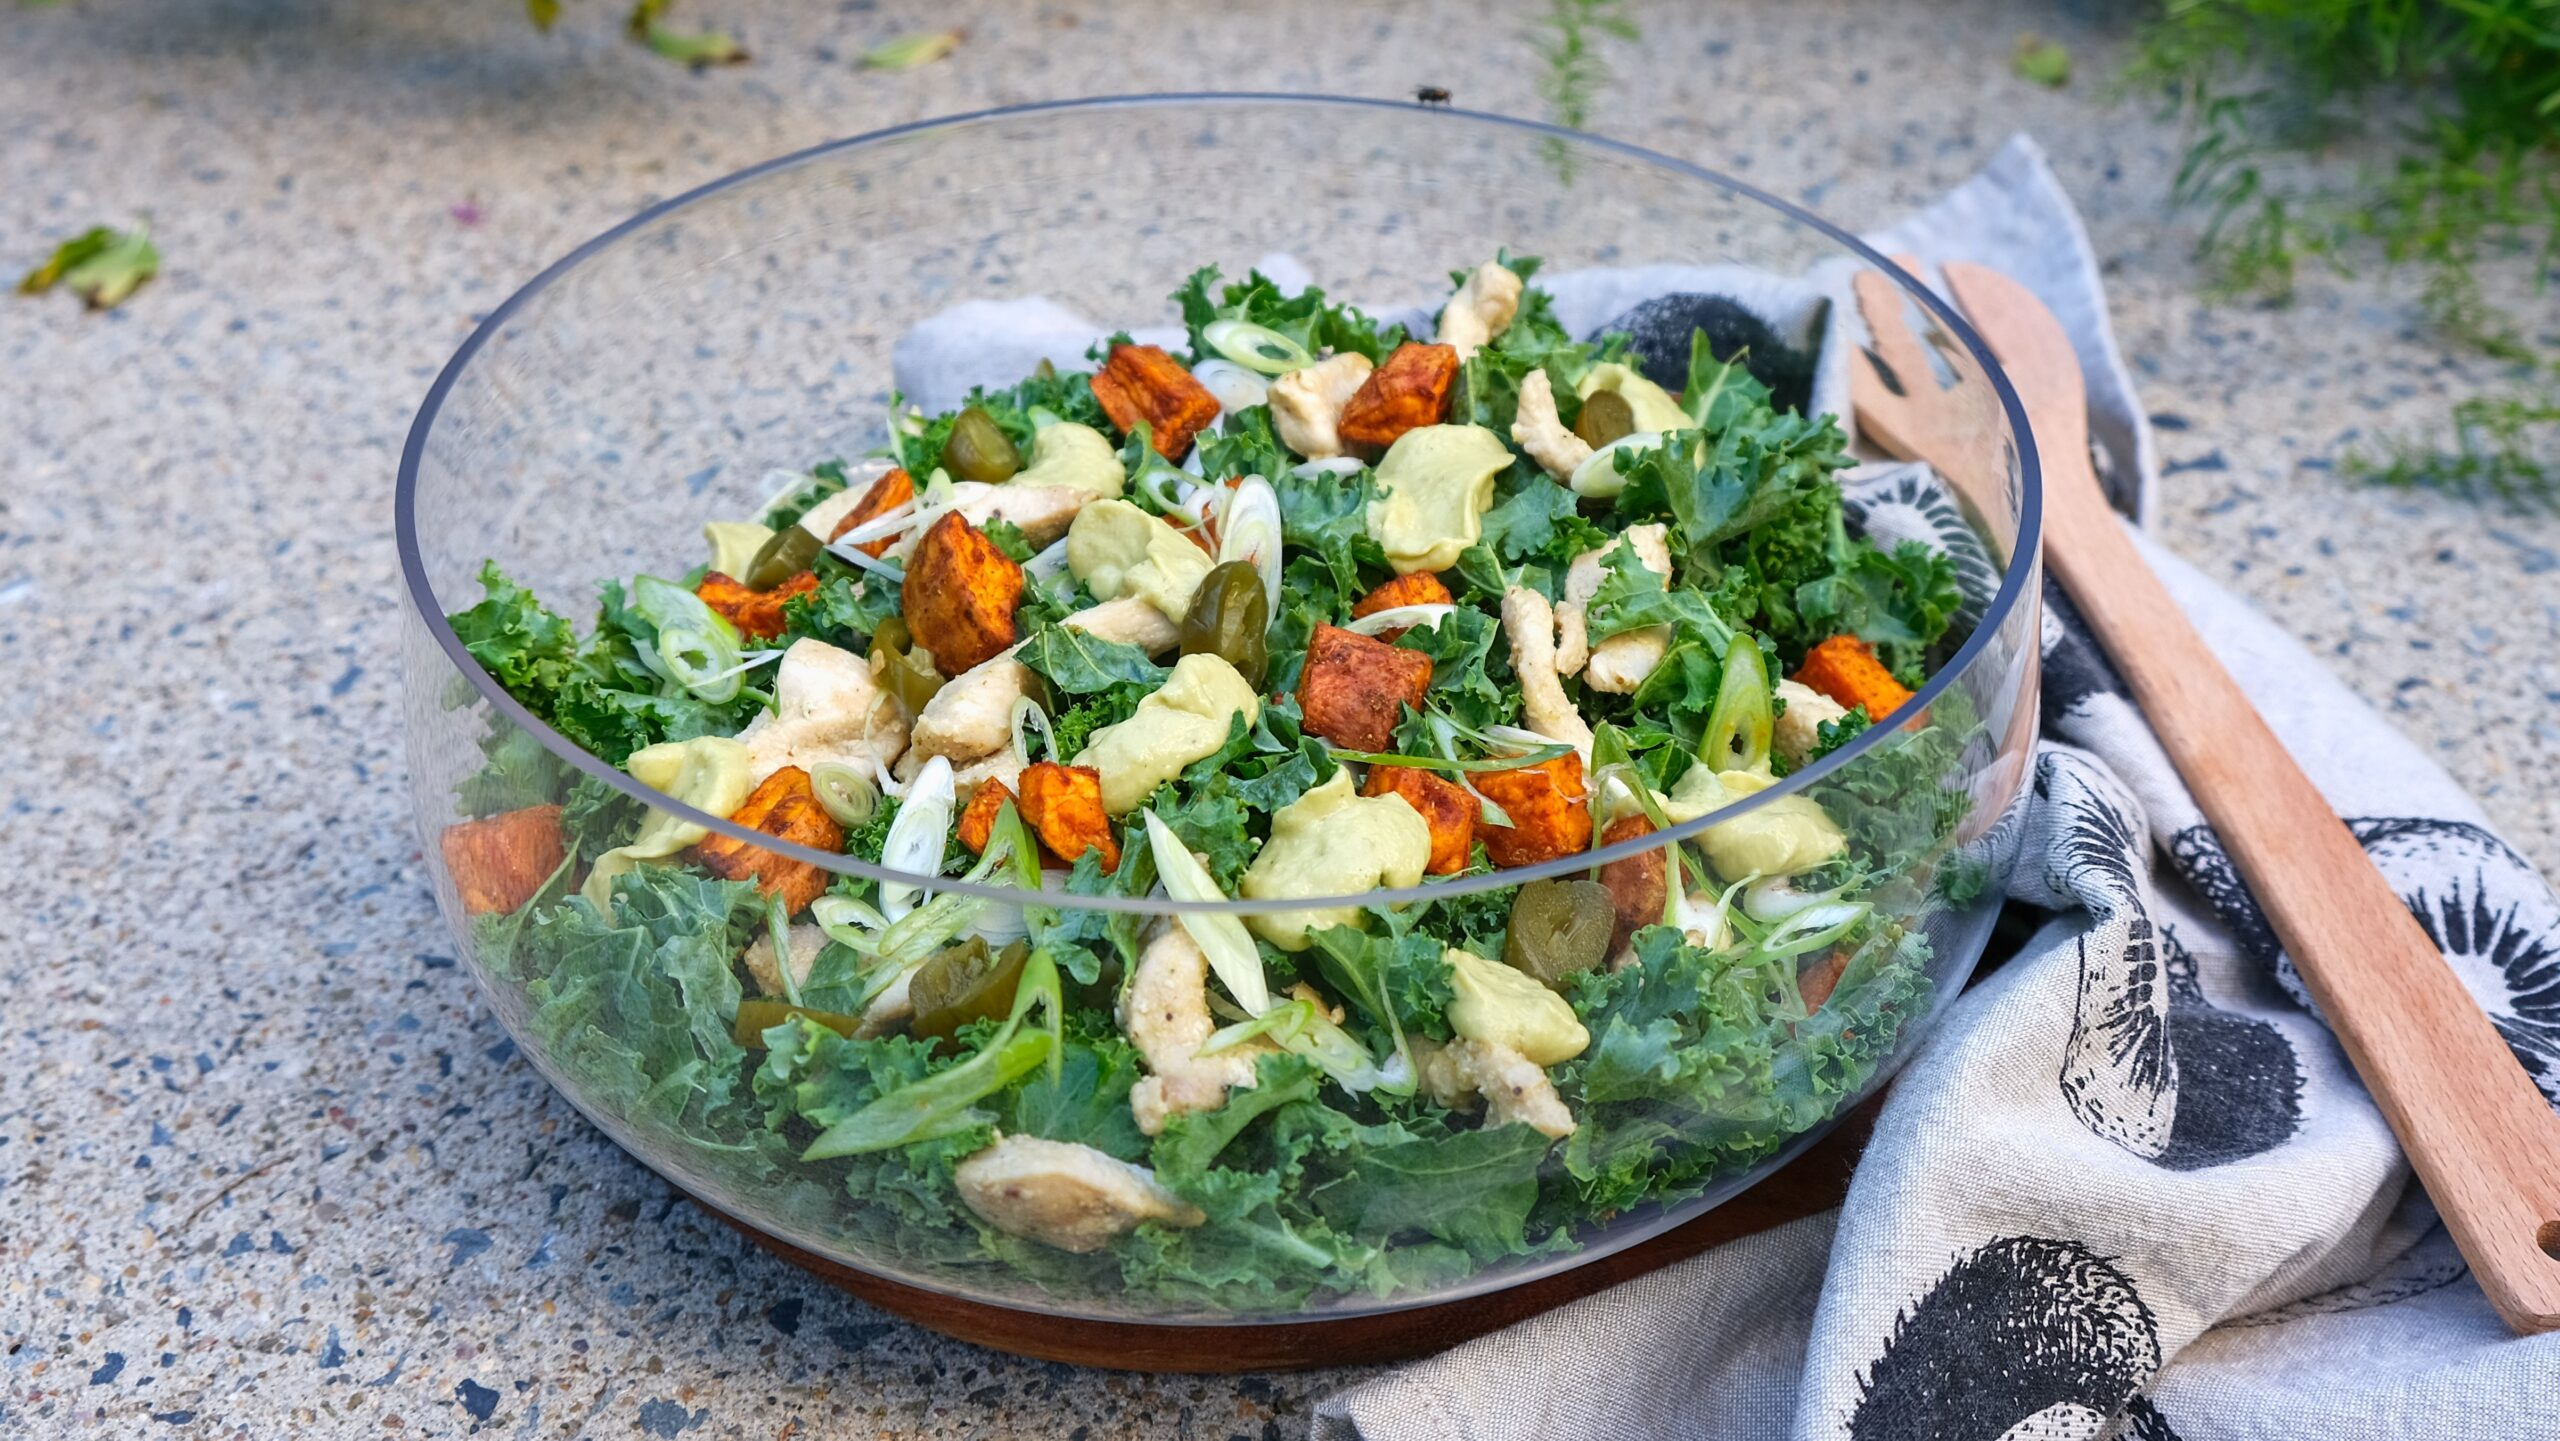 Simple Kale And Chicken Salad (Paleo, Whole30, Low Carb)